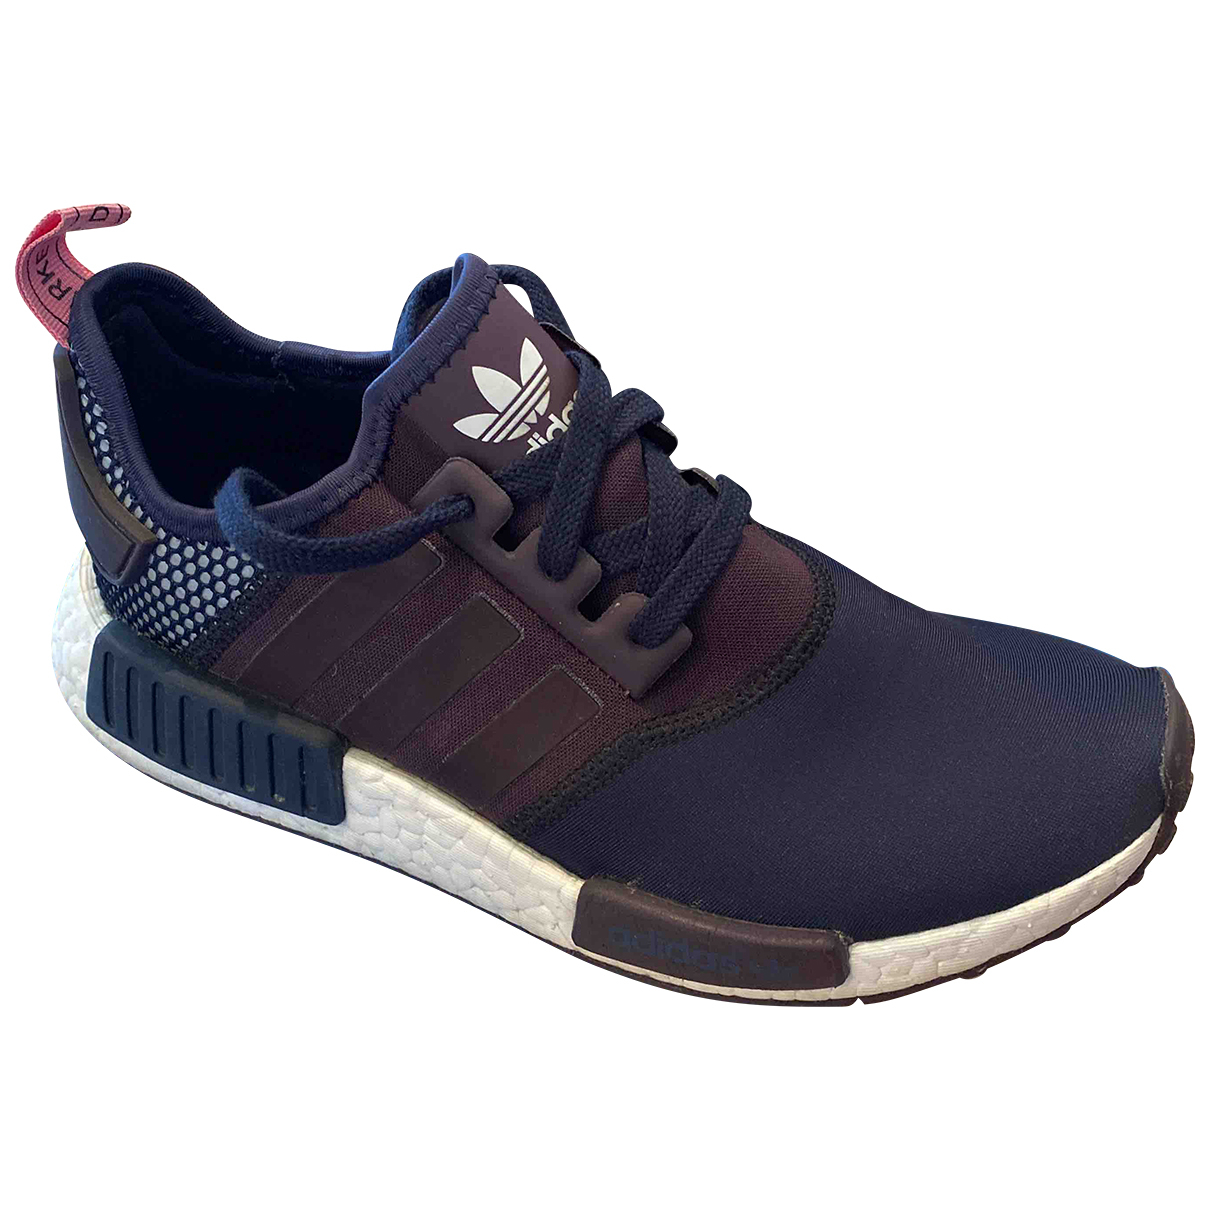 Adidas Nmd Navy Cloth Trainers for Women 7 US